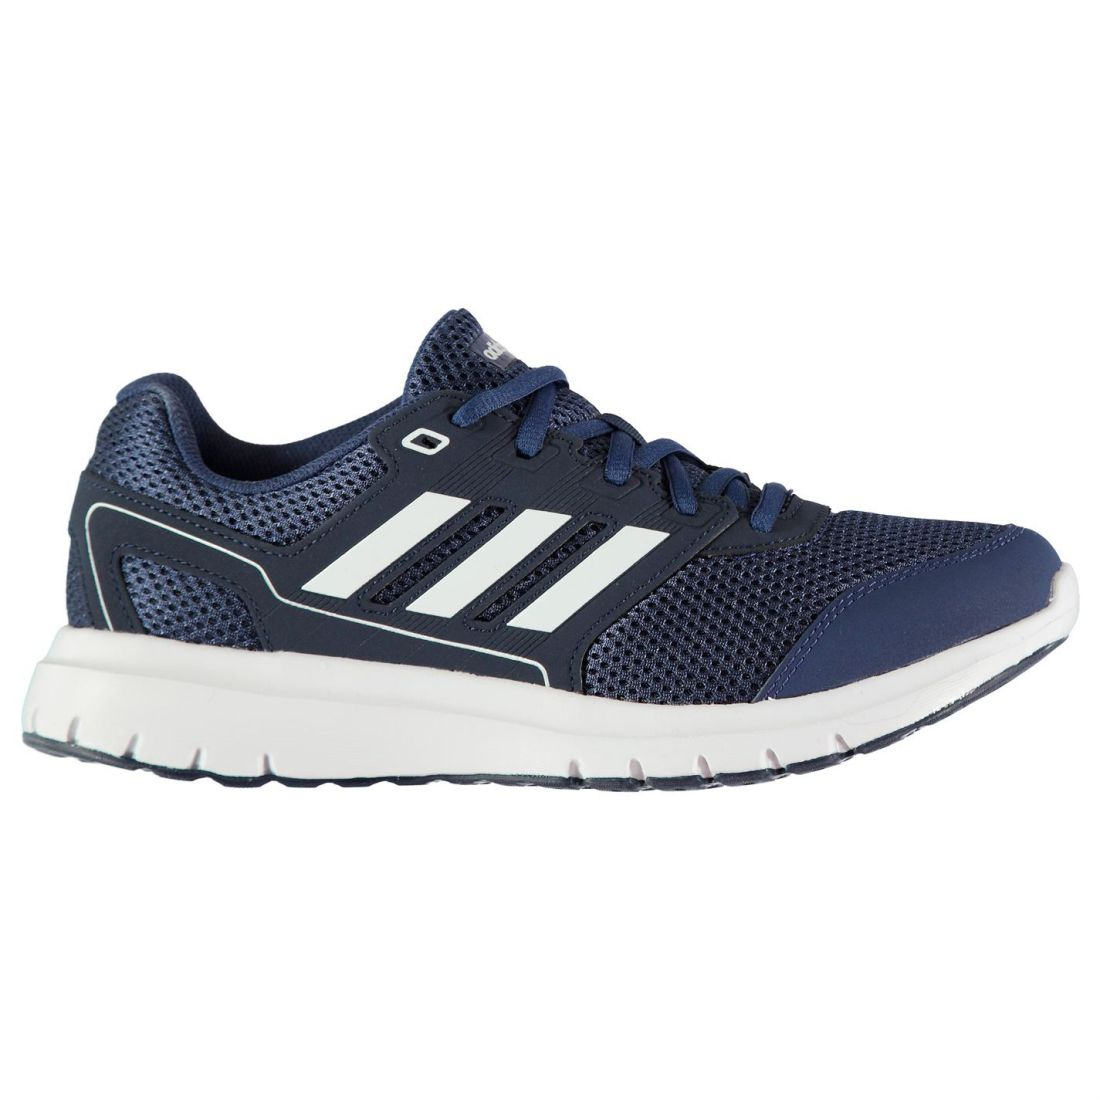 online store 10ff8 6189e adidas Duramo Lite 2 Sneakers Mens Gents Runners Laces Fastened Ventilated  Mesh 3 3 sur 5 ...